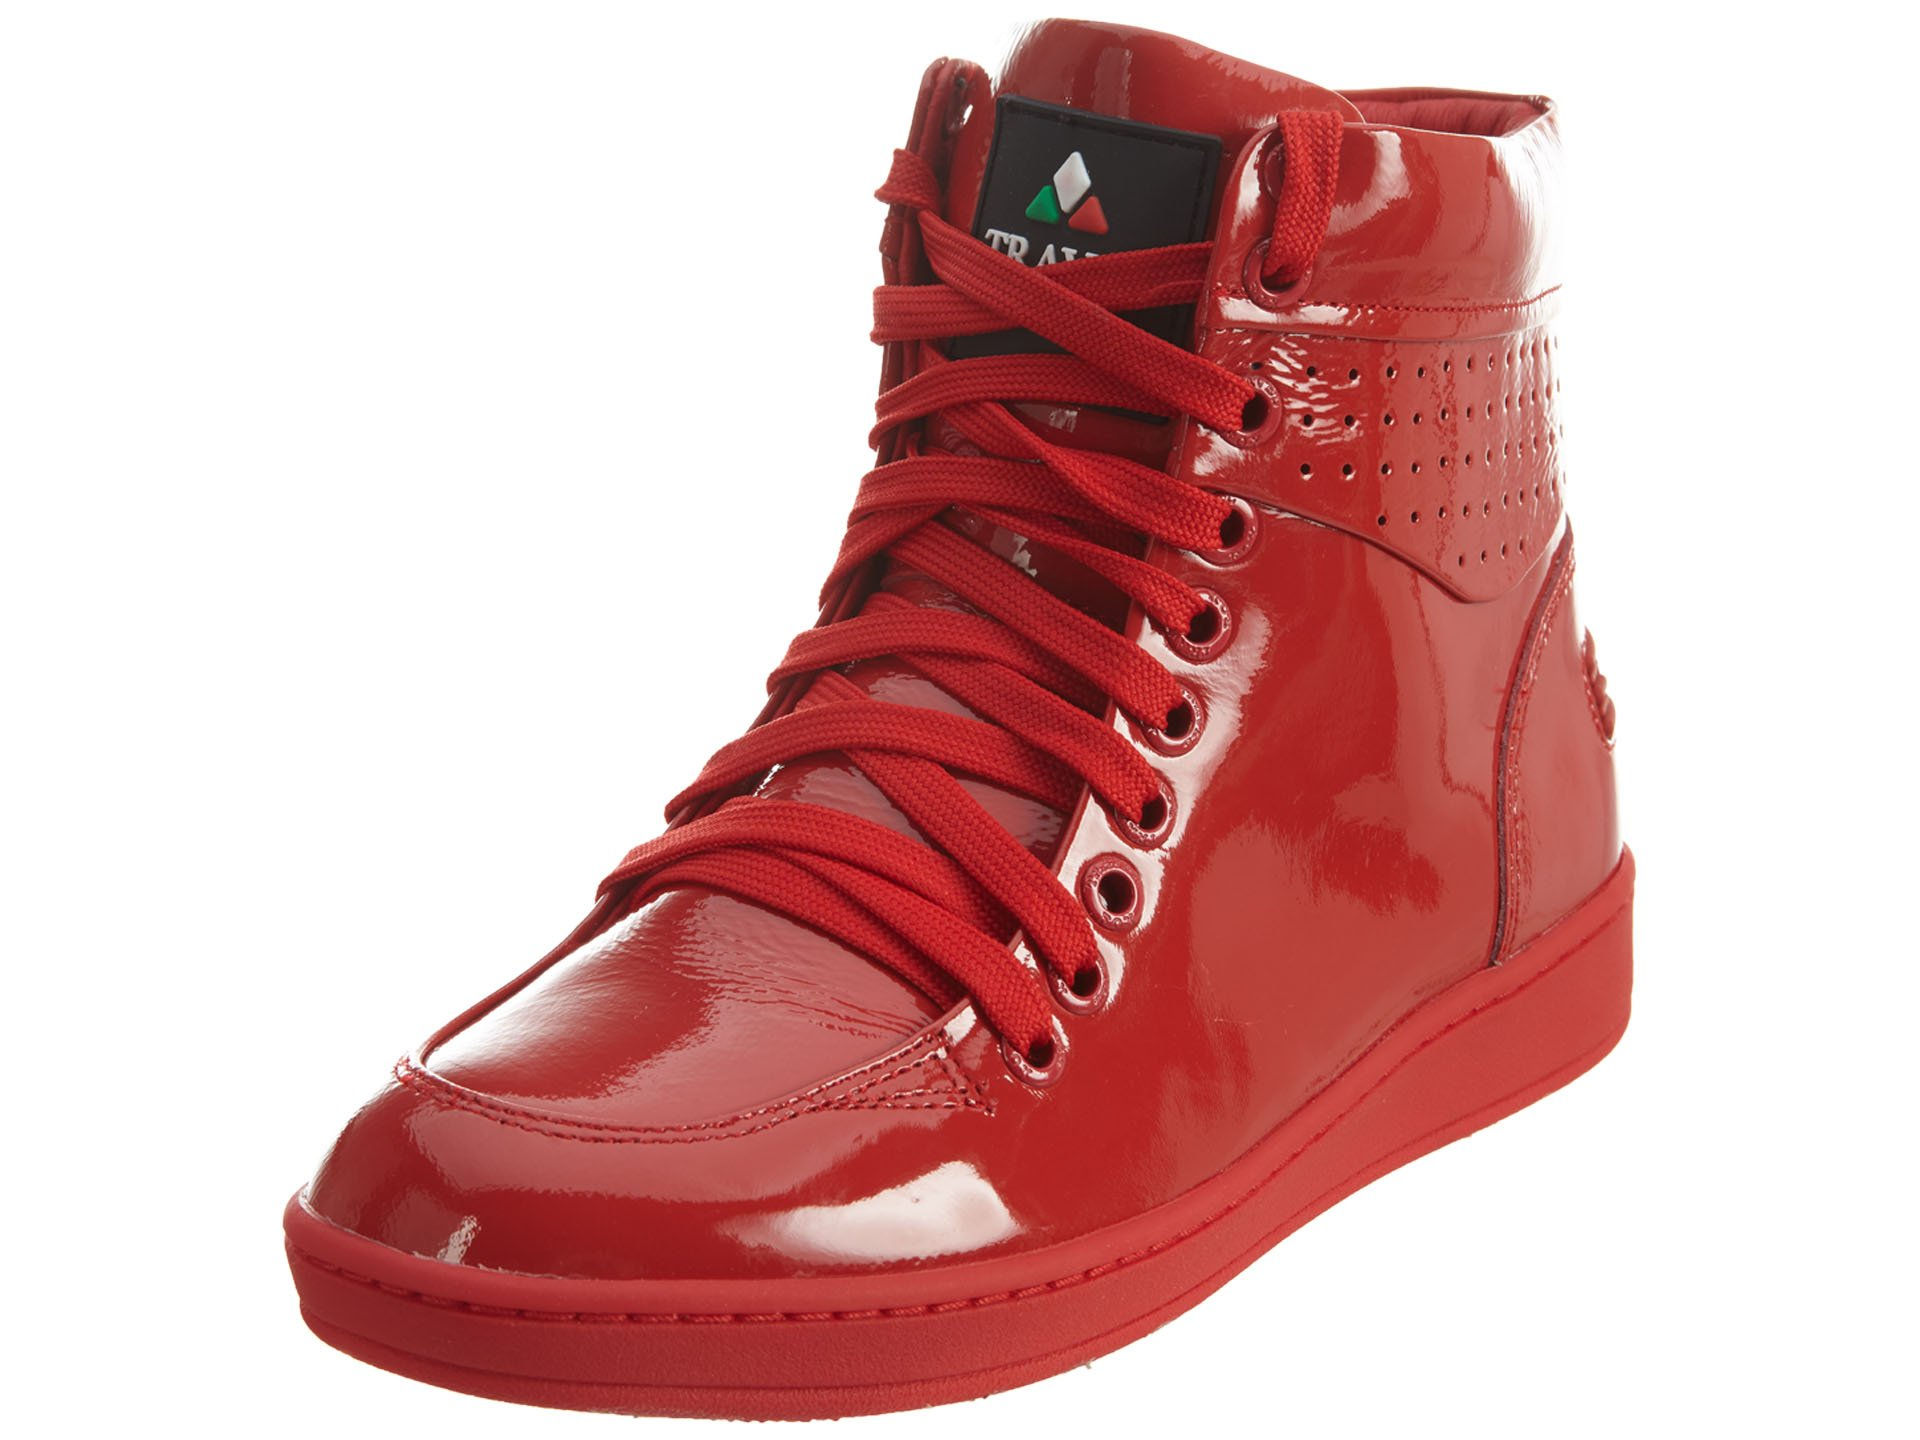 Travel Fox 900 Series Nappa Leather High Top Womens Style: 916301-404 Size: 40